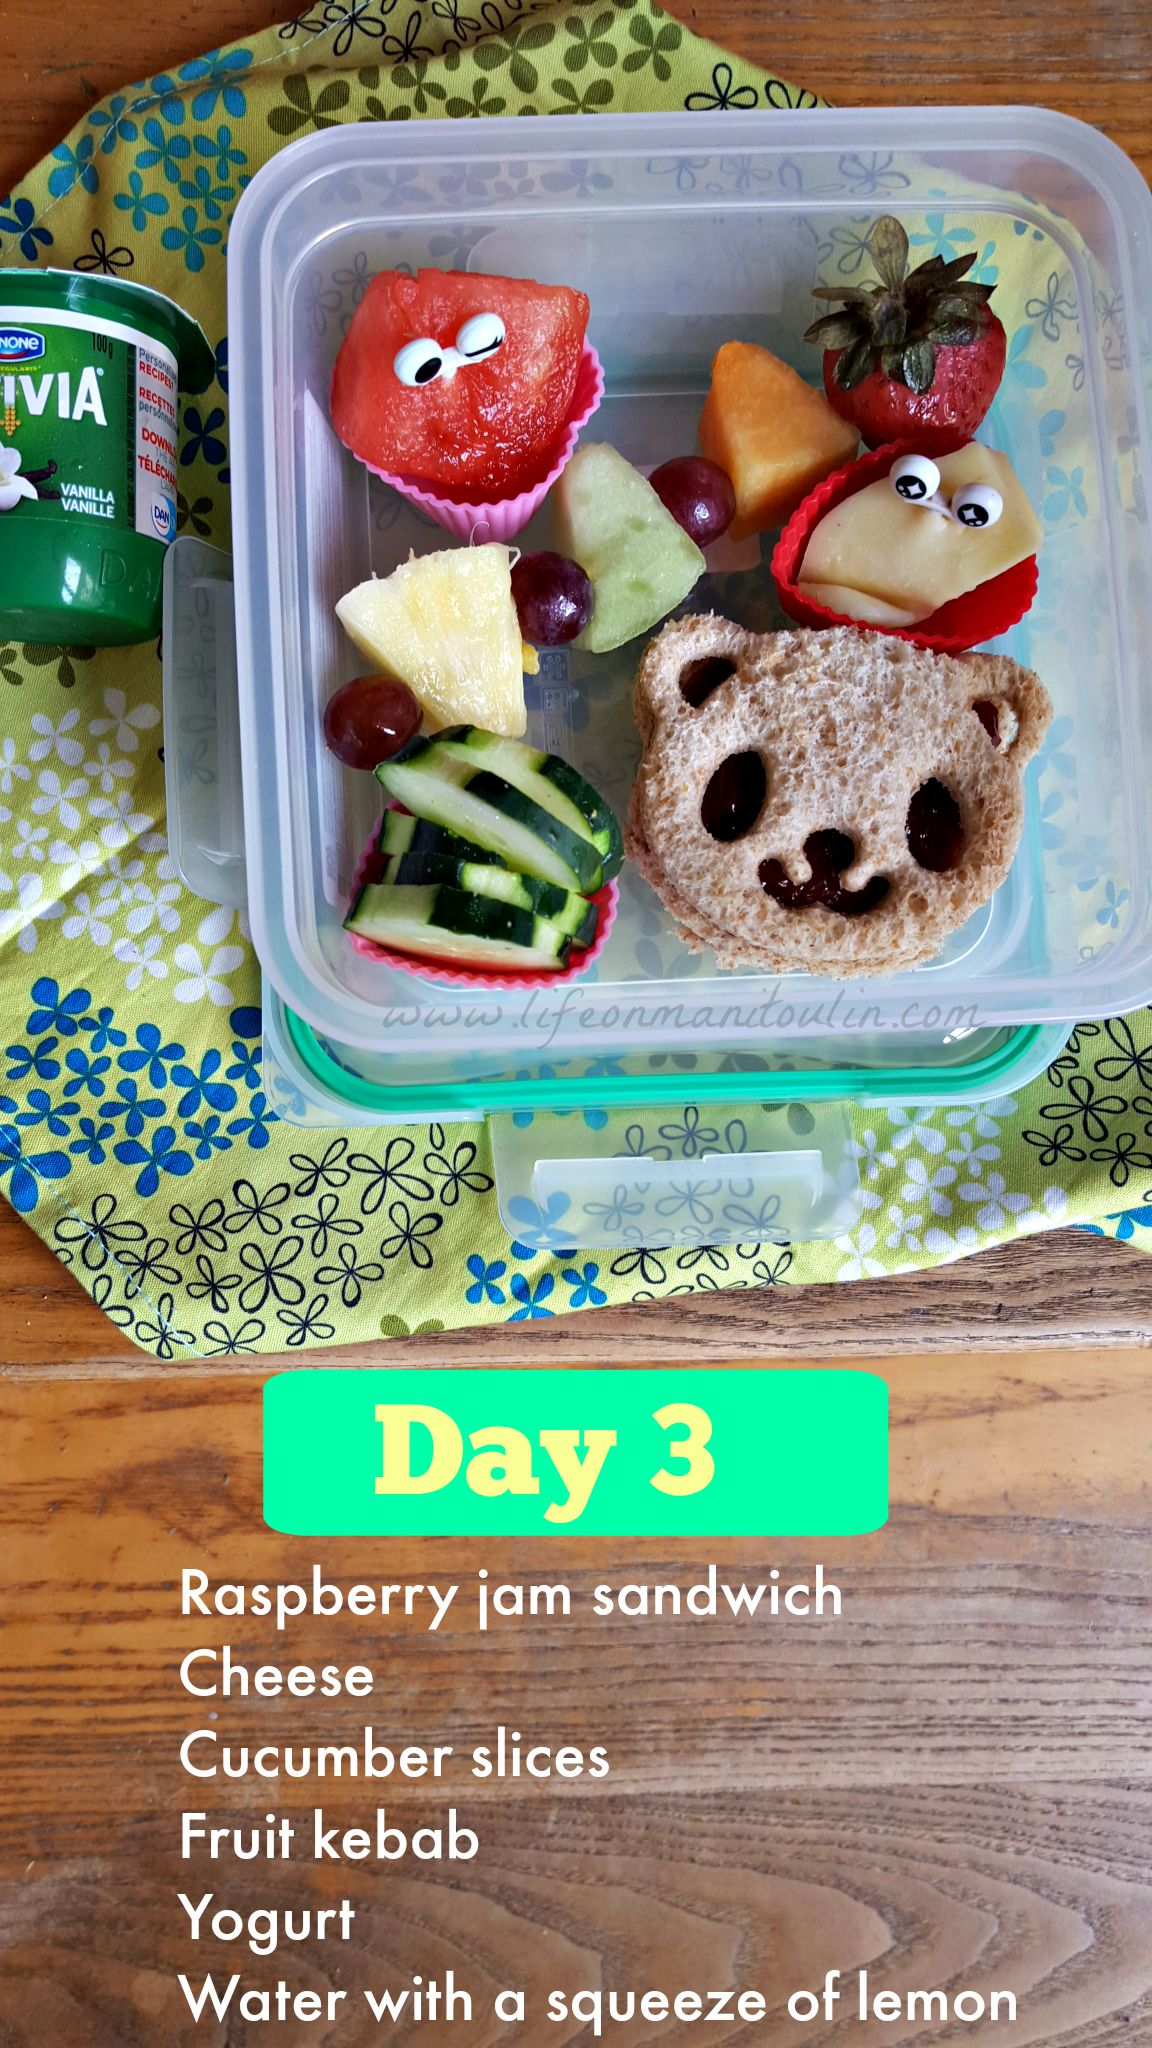 Lunch In A Box How To Pack A Bento Box Lunch In A Snap Life On Manitoulin